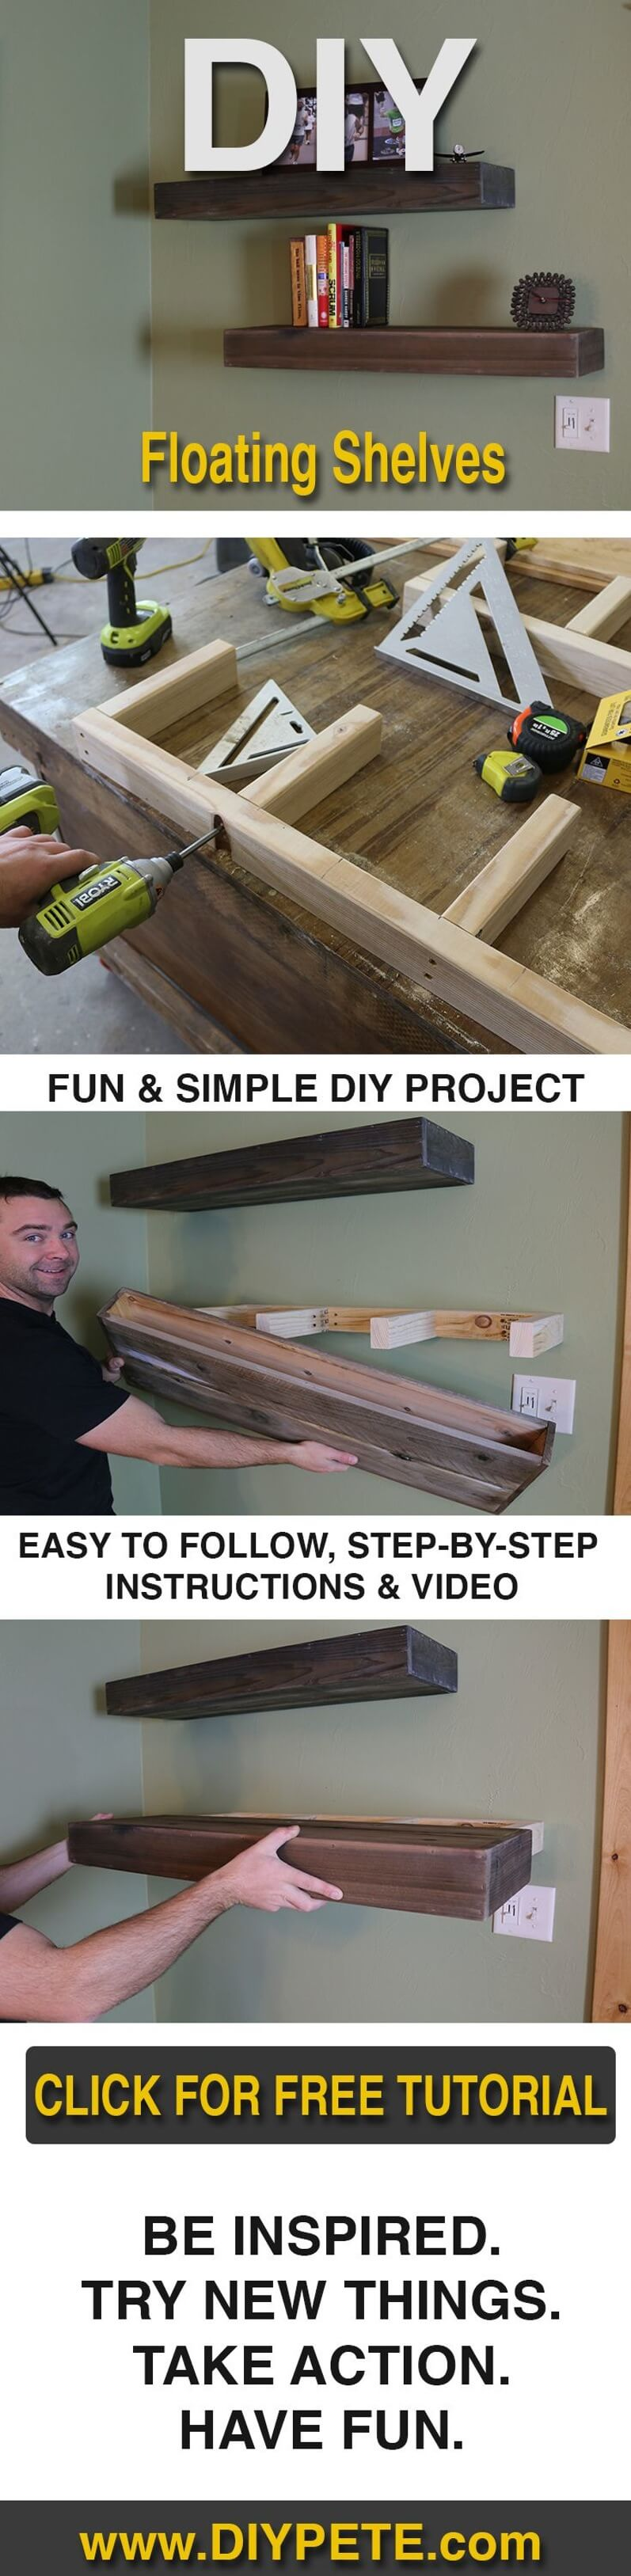 27 Best Diy Floating Shelf Ideas And Designs For 2021